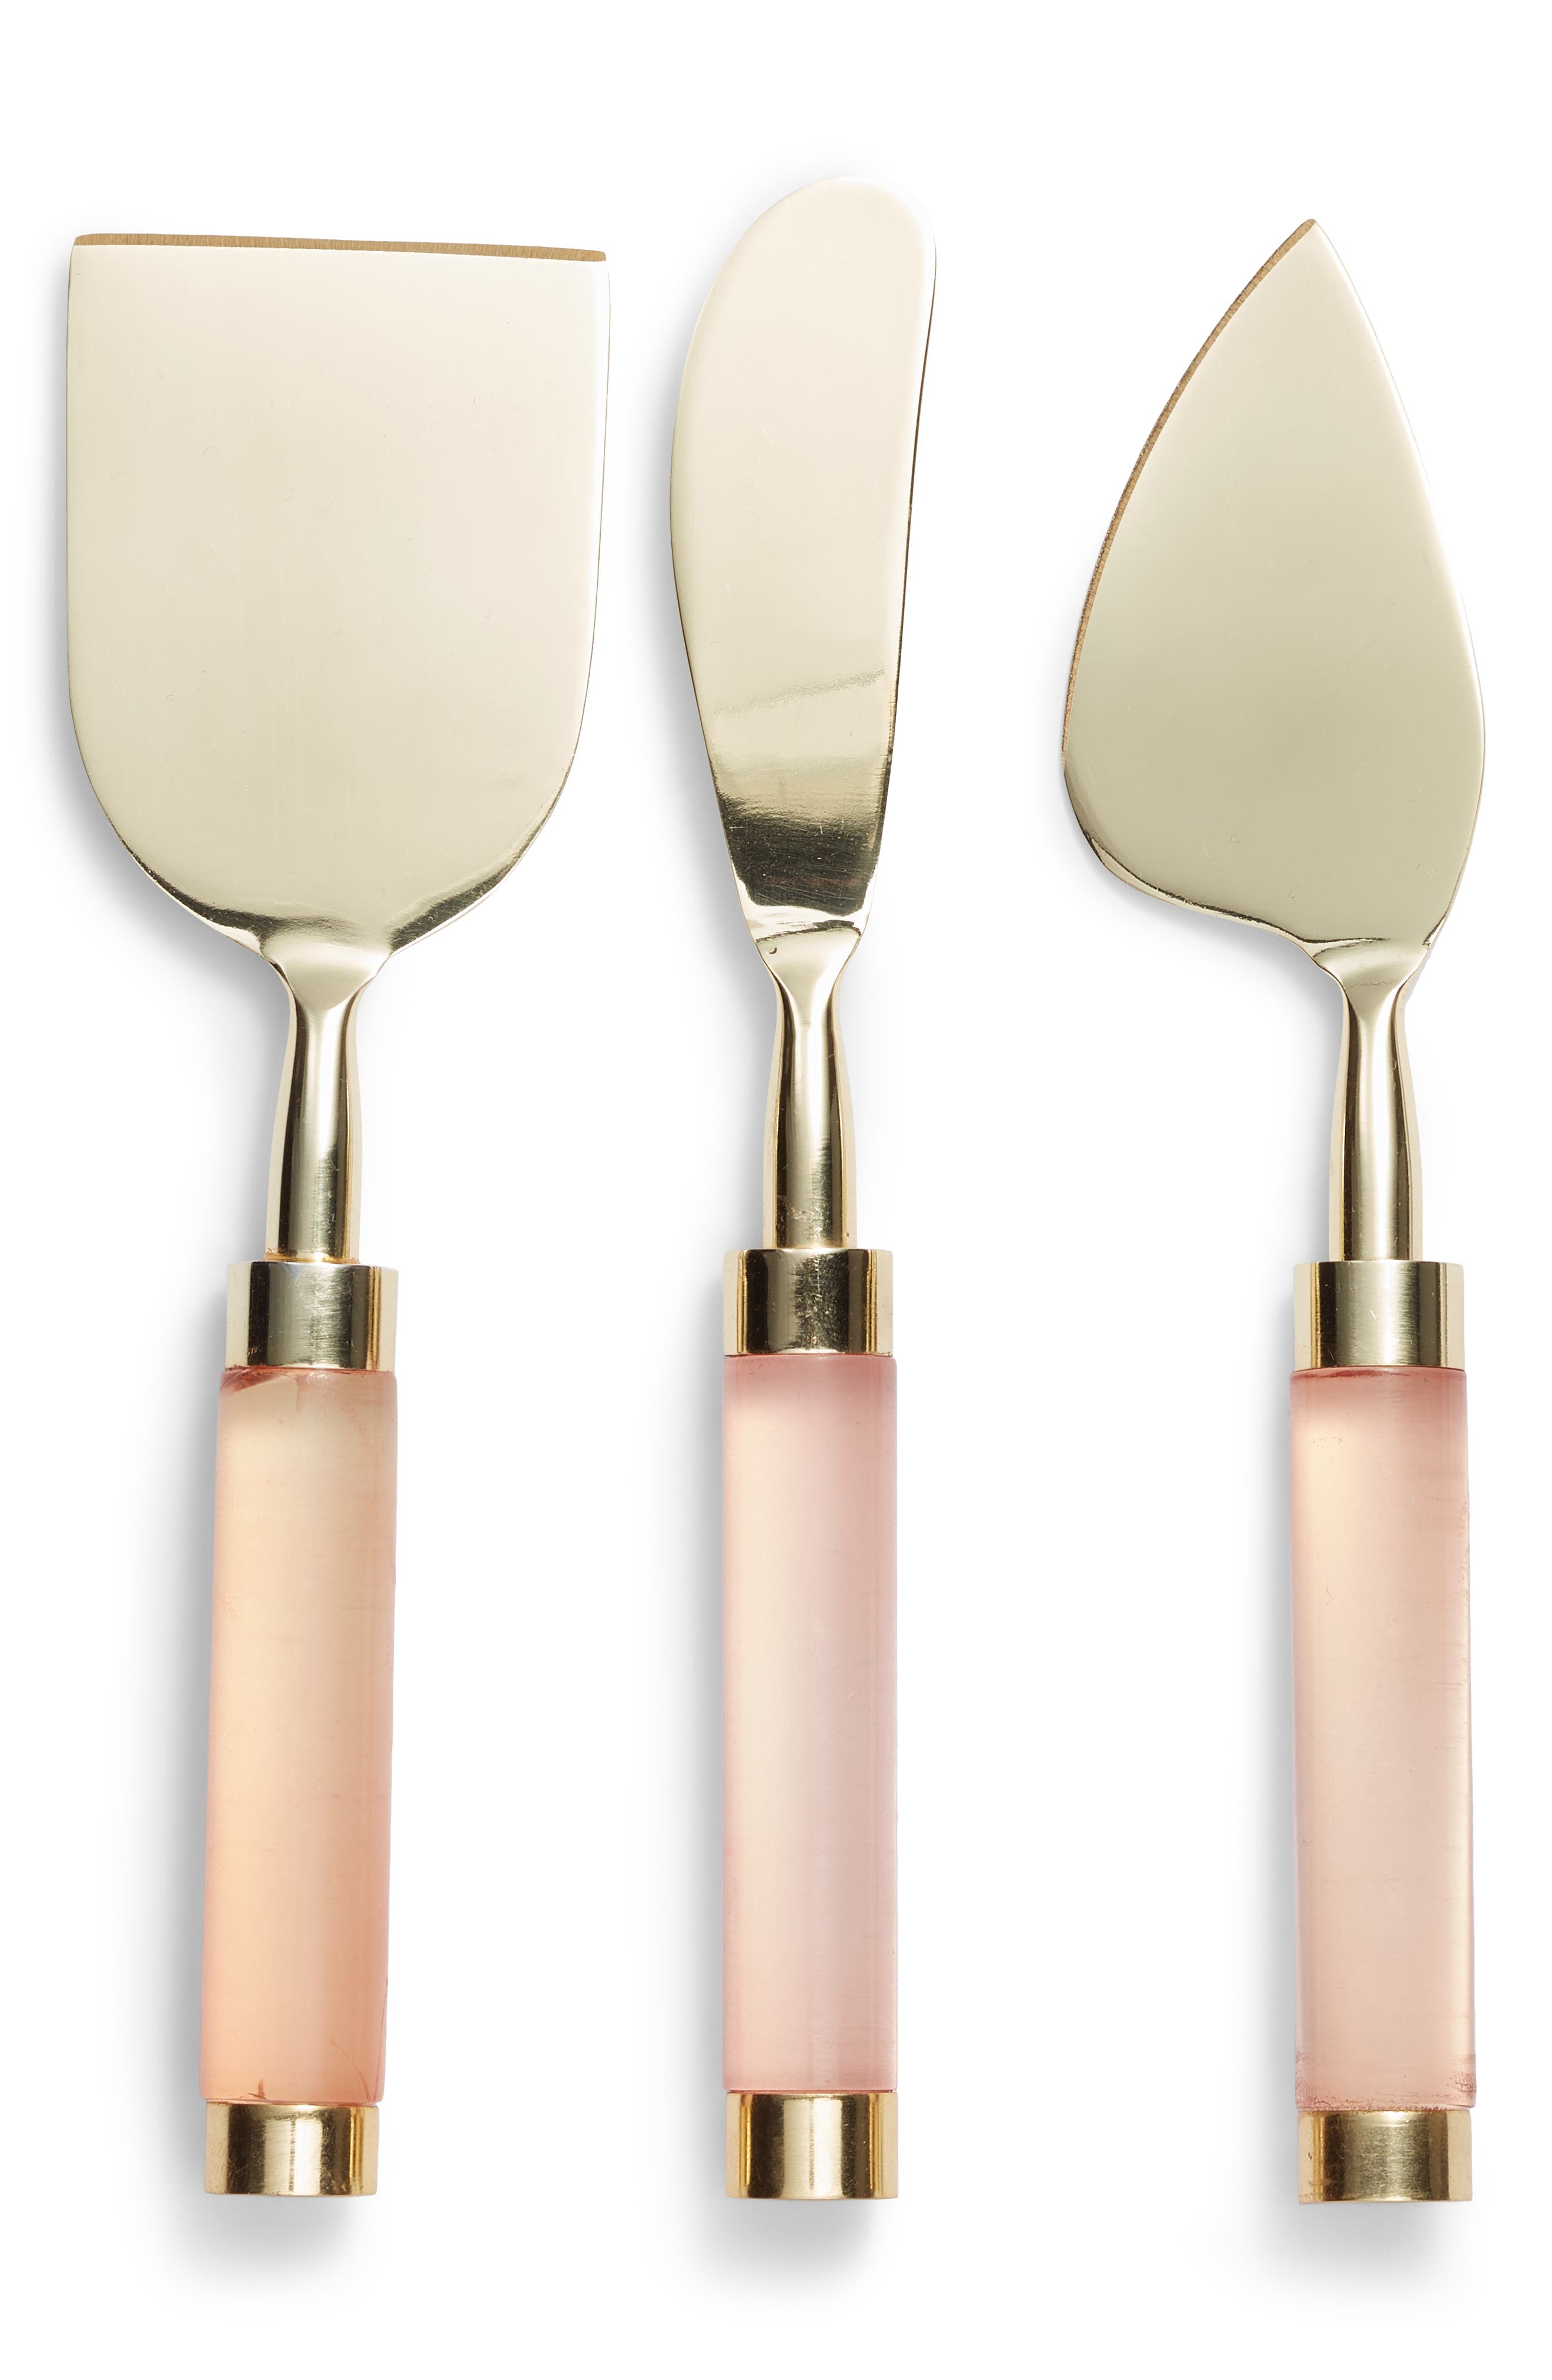 NORDSTROM AT HOME, Set of 3 Lucite<sup>®</sup> Handle Cheese Knives, Main thumbnail 1, color, BRUSHED GOLD/ PINK